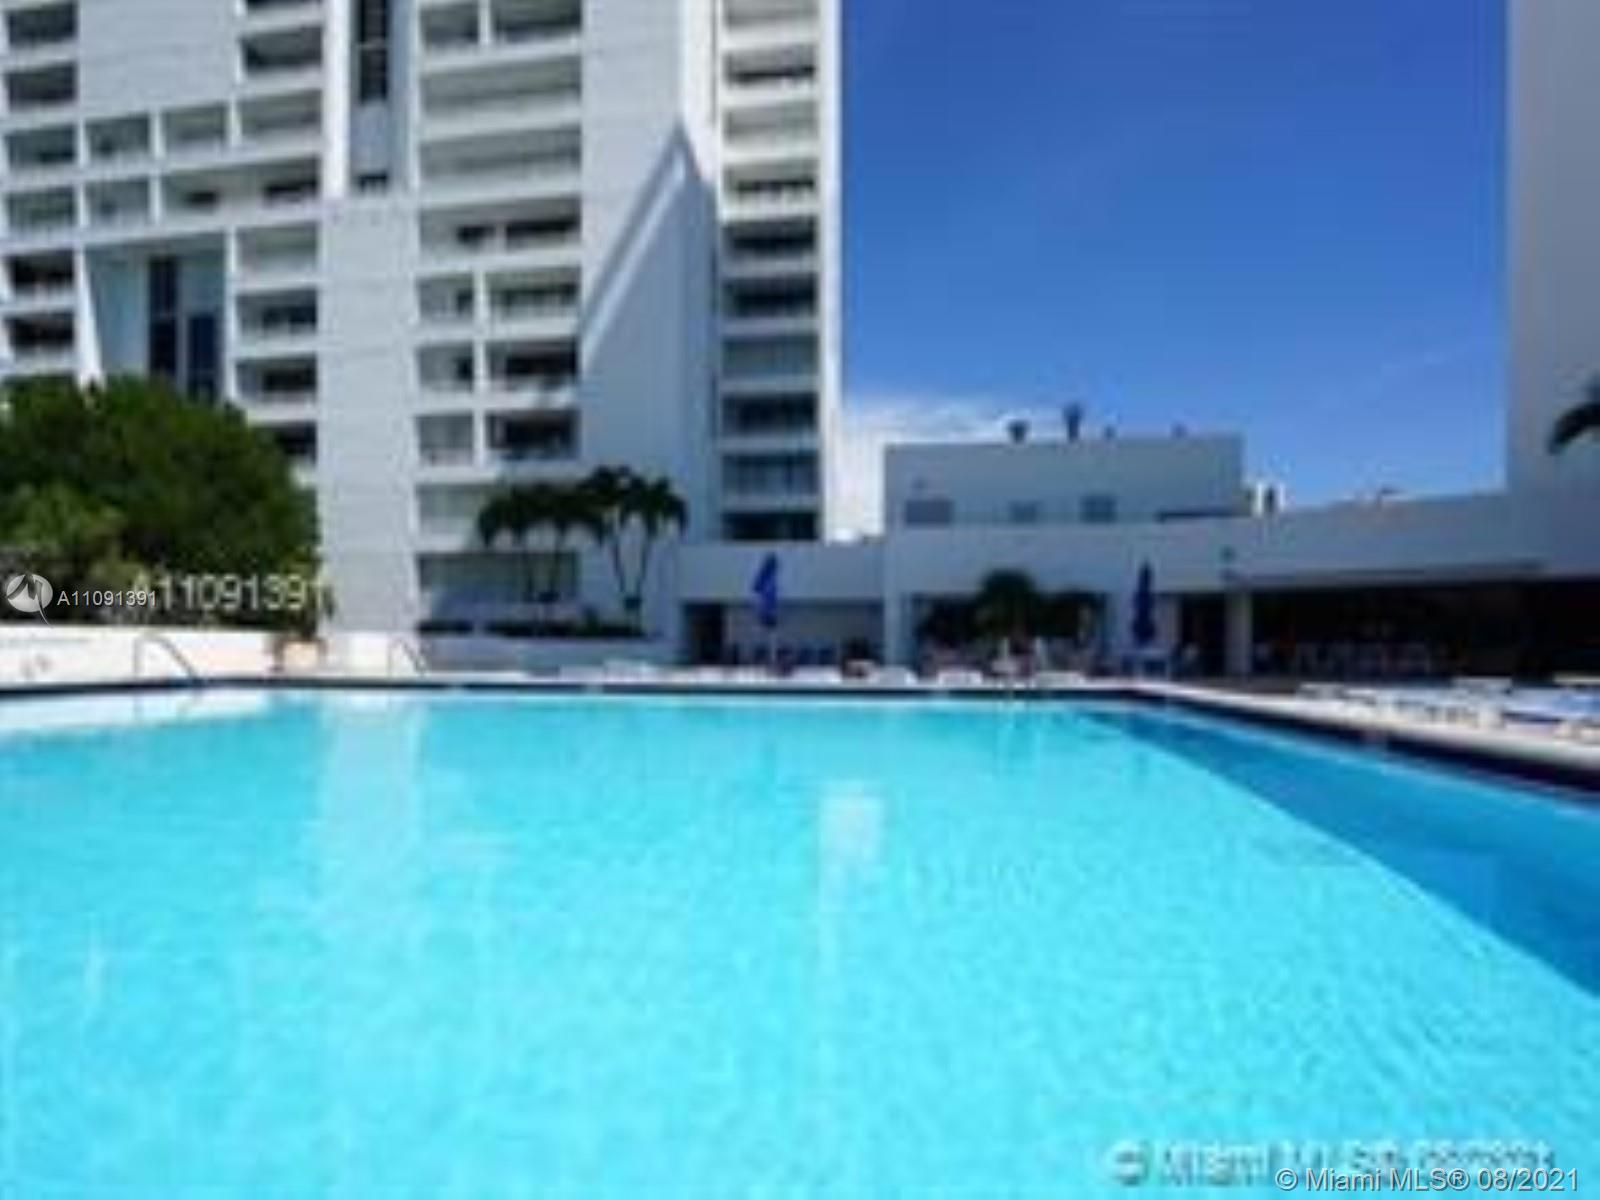 ULTIMATE #MIAMI #LIFESTYLE, DELVISTA CONDO IS SURROUNDED WORLD FAMOUSE #TURNBERRY #GOLF COURSE (HUGE